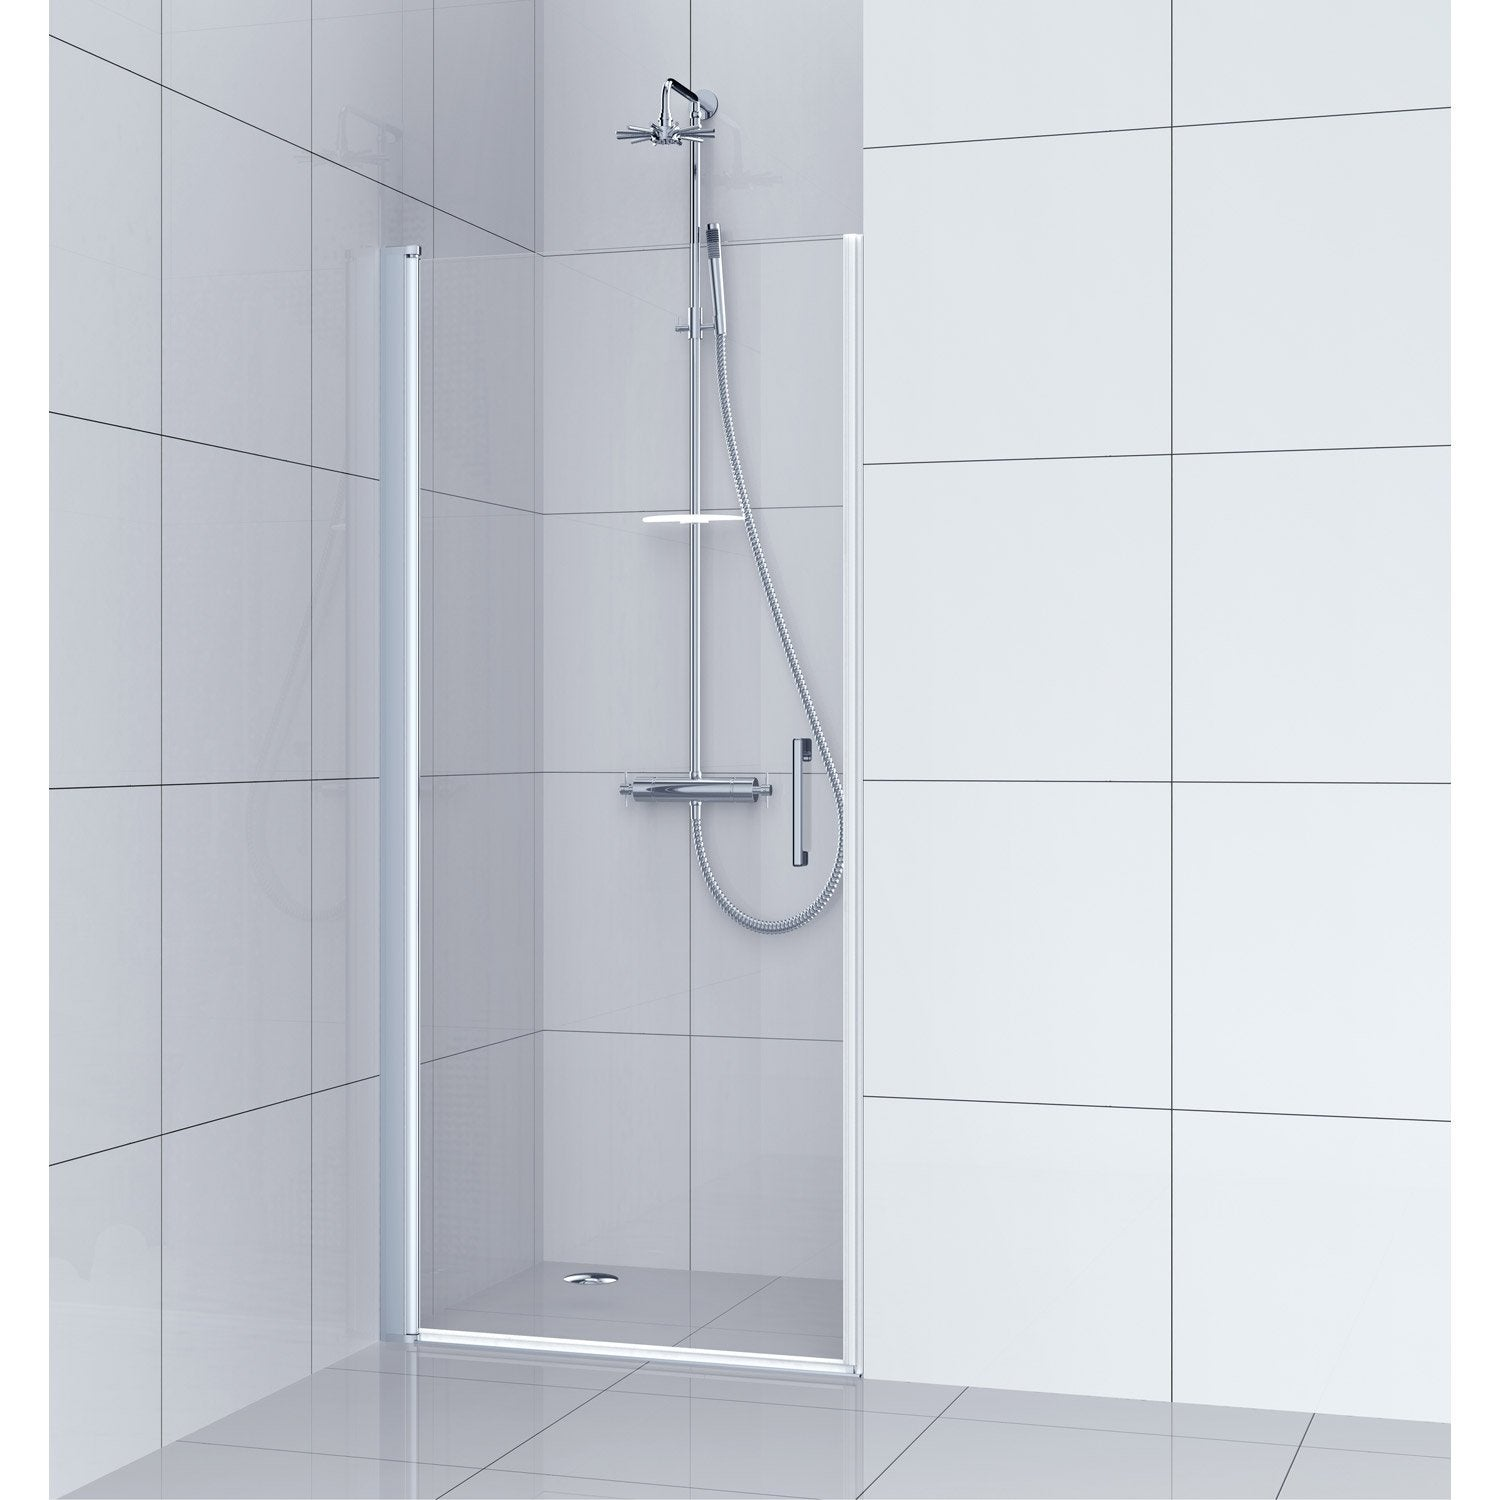 Porte de douche pivotante 100 cm transparent remix for Porte de douche 100